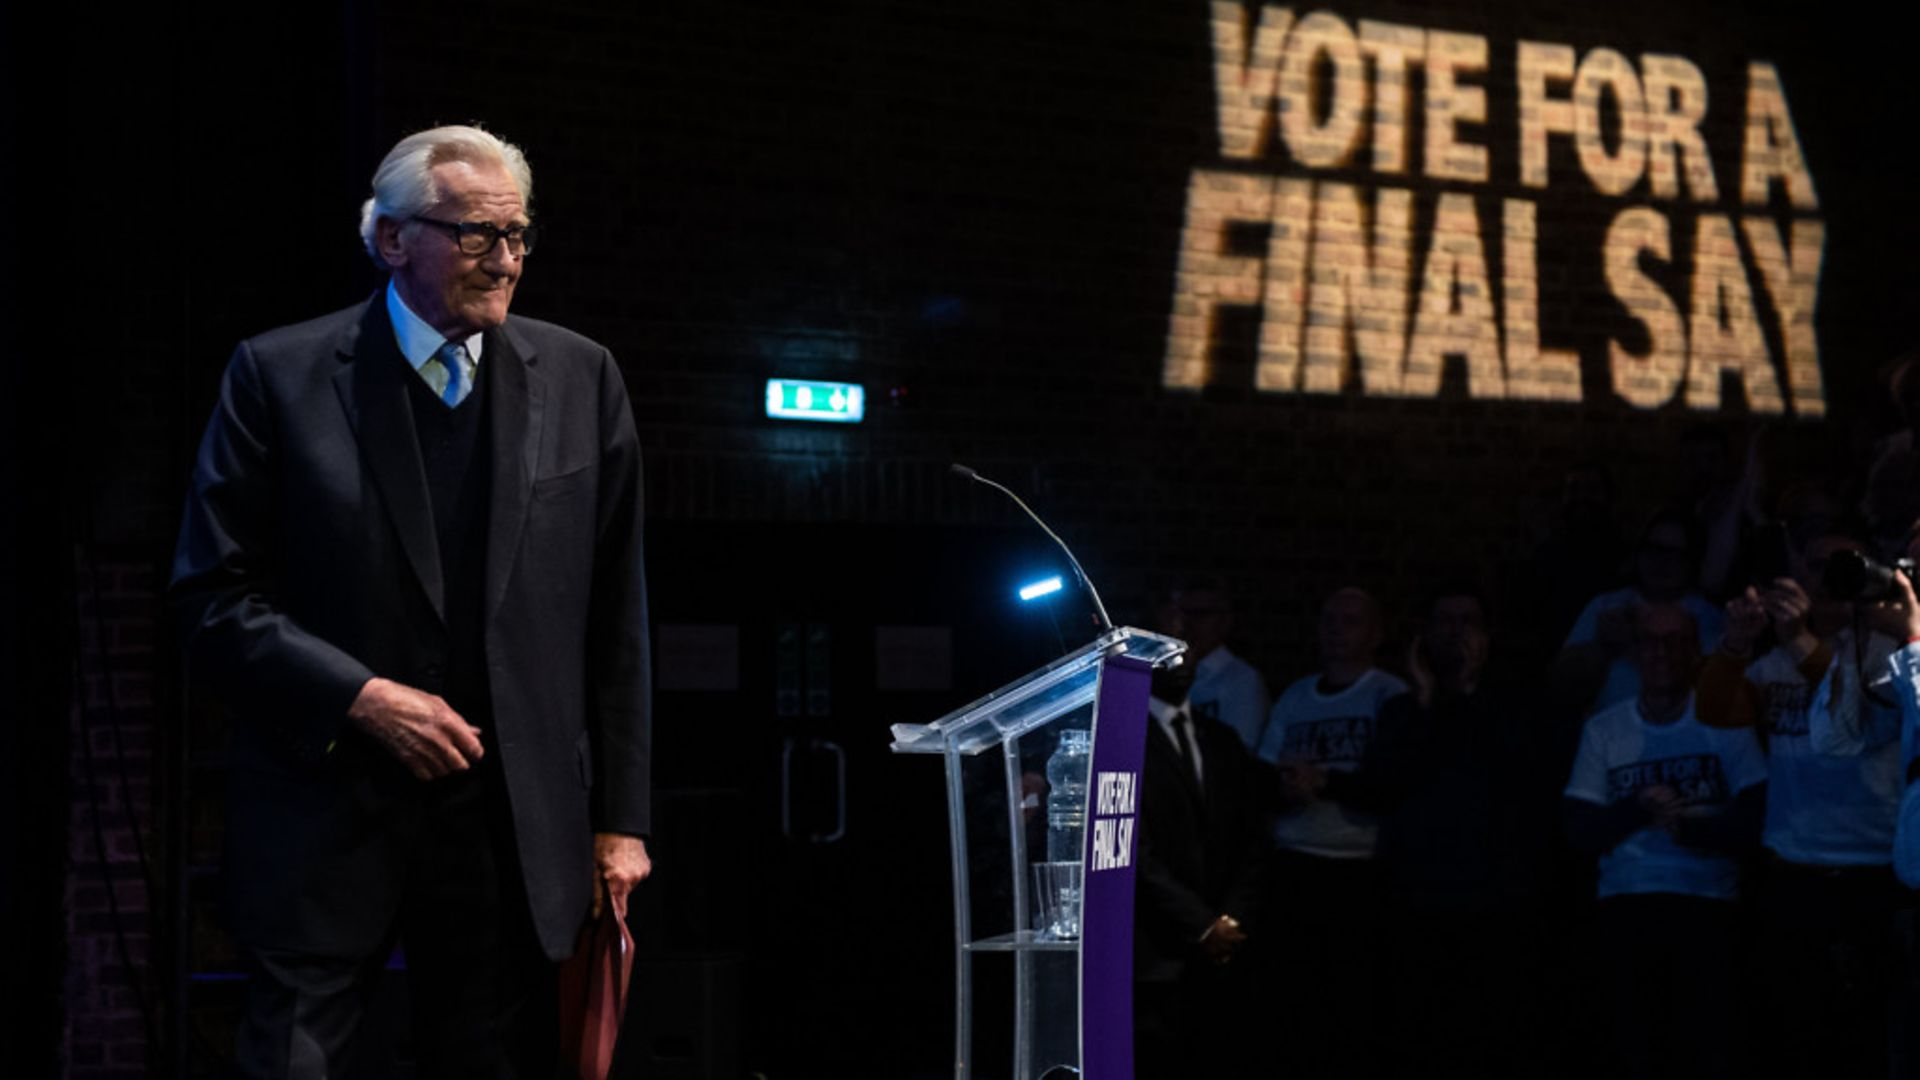 Lord Michael Heseltine speaks at a 'Vote for a Final Say' rally about Brexit - Credit: Getty Images